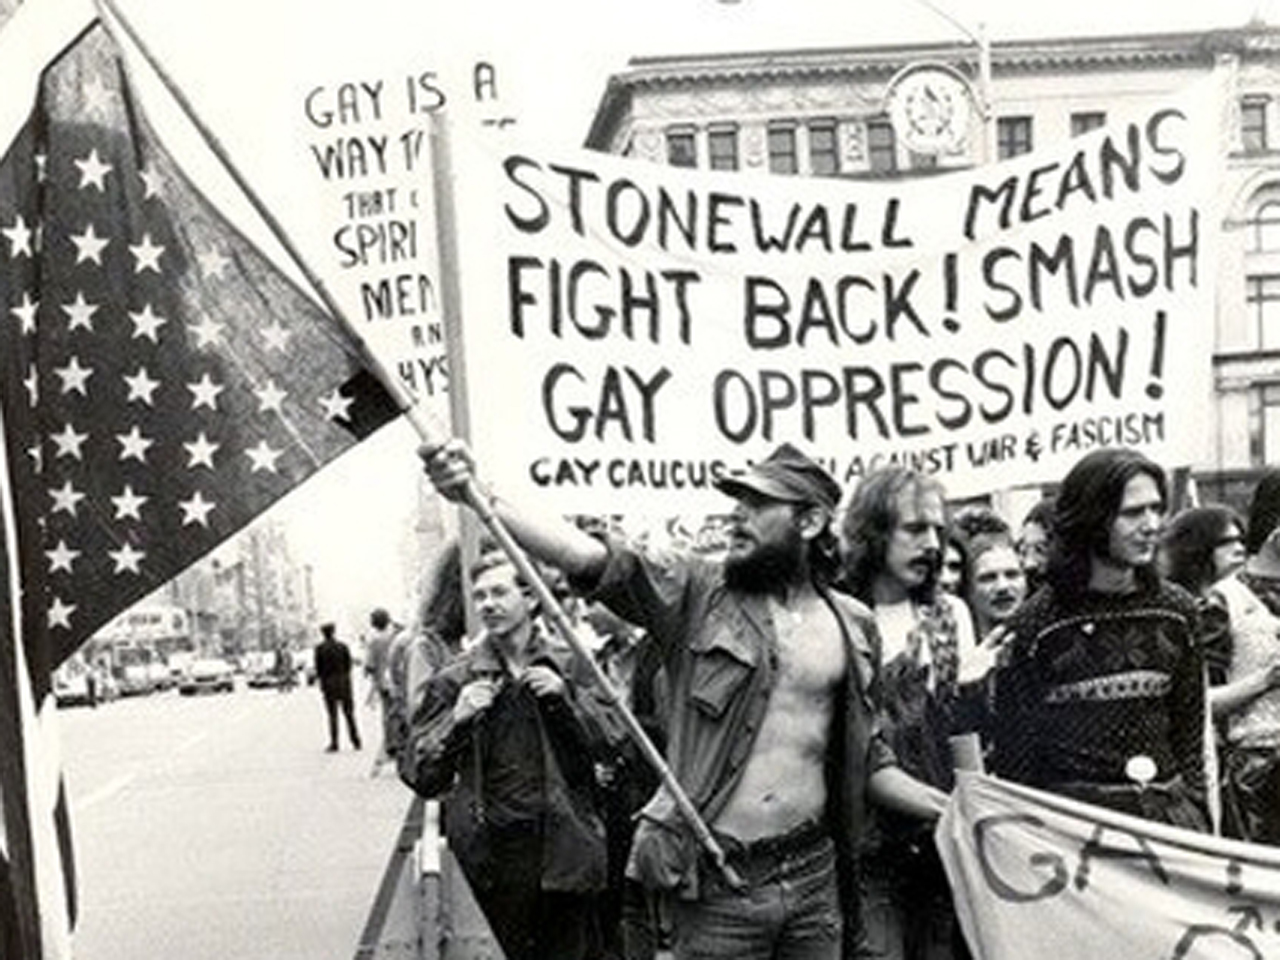 From the 1970 NYC Pride parade